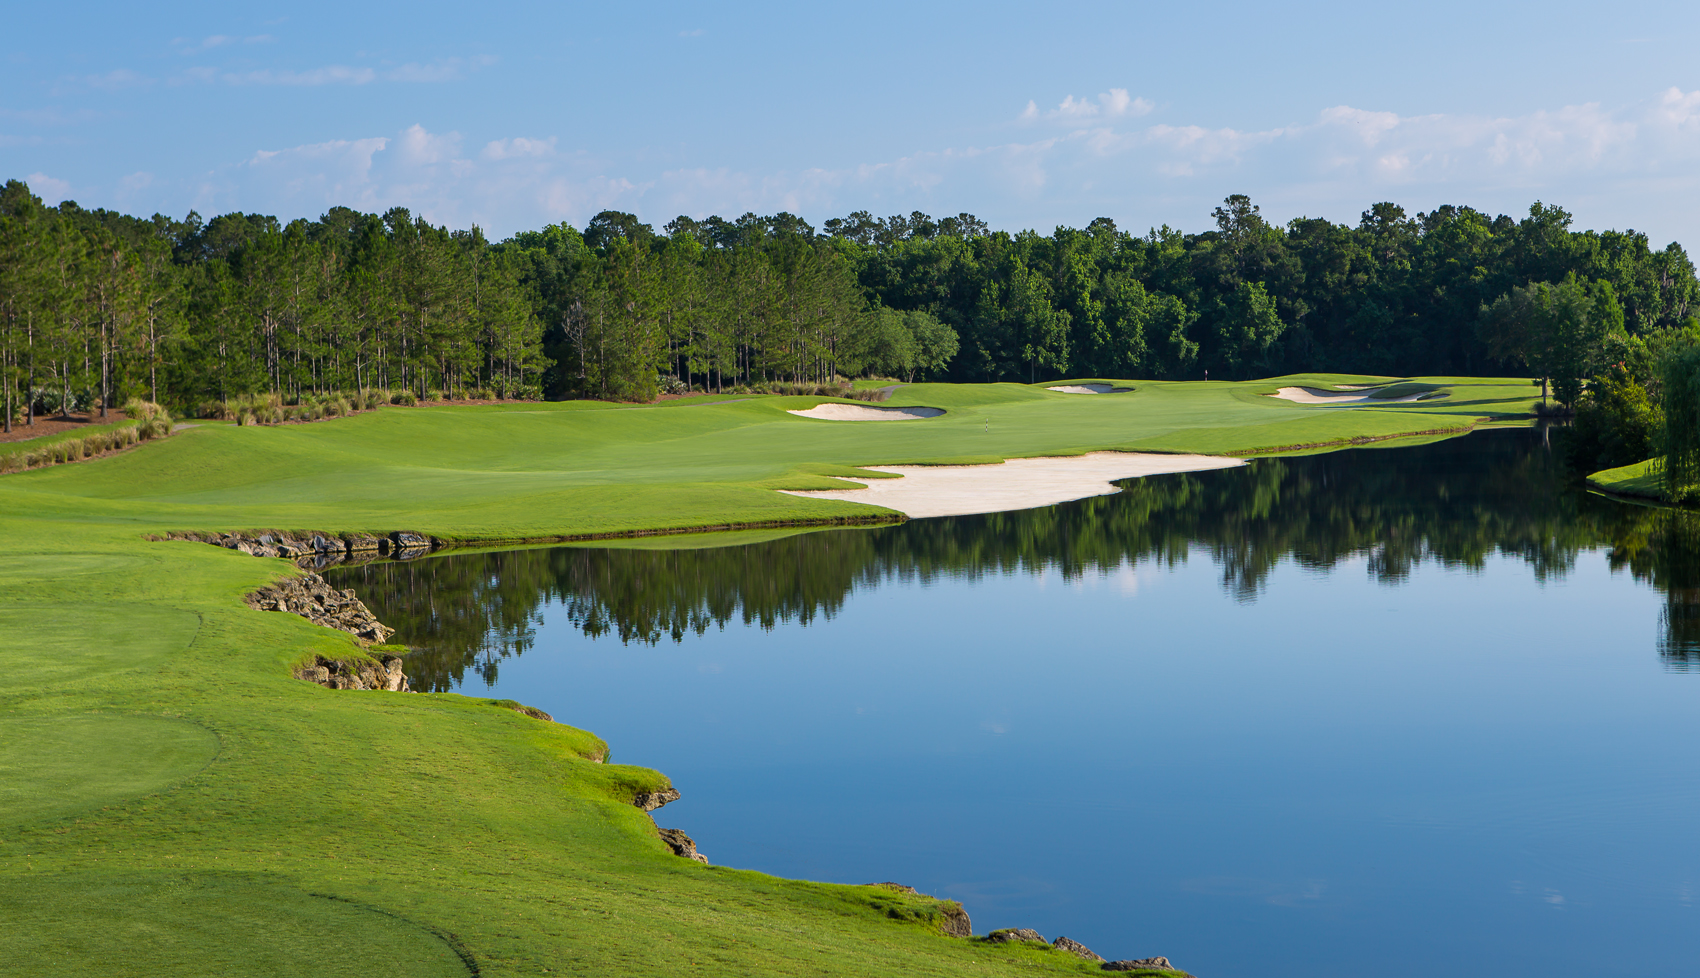 King & Bear's first hole has recognizable elements from both the Nicklaus and Palmer design firms.